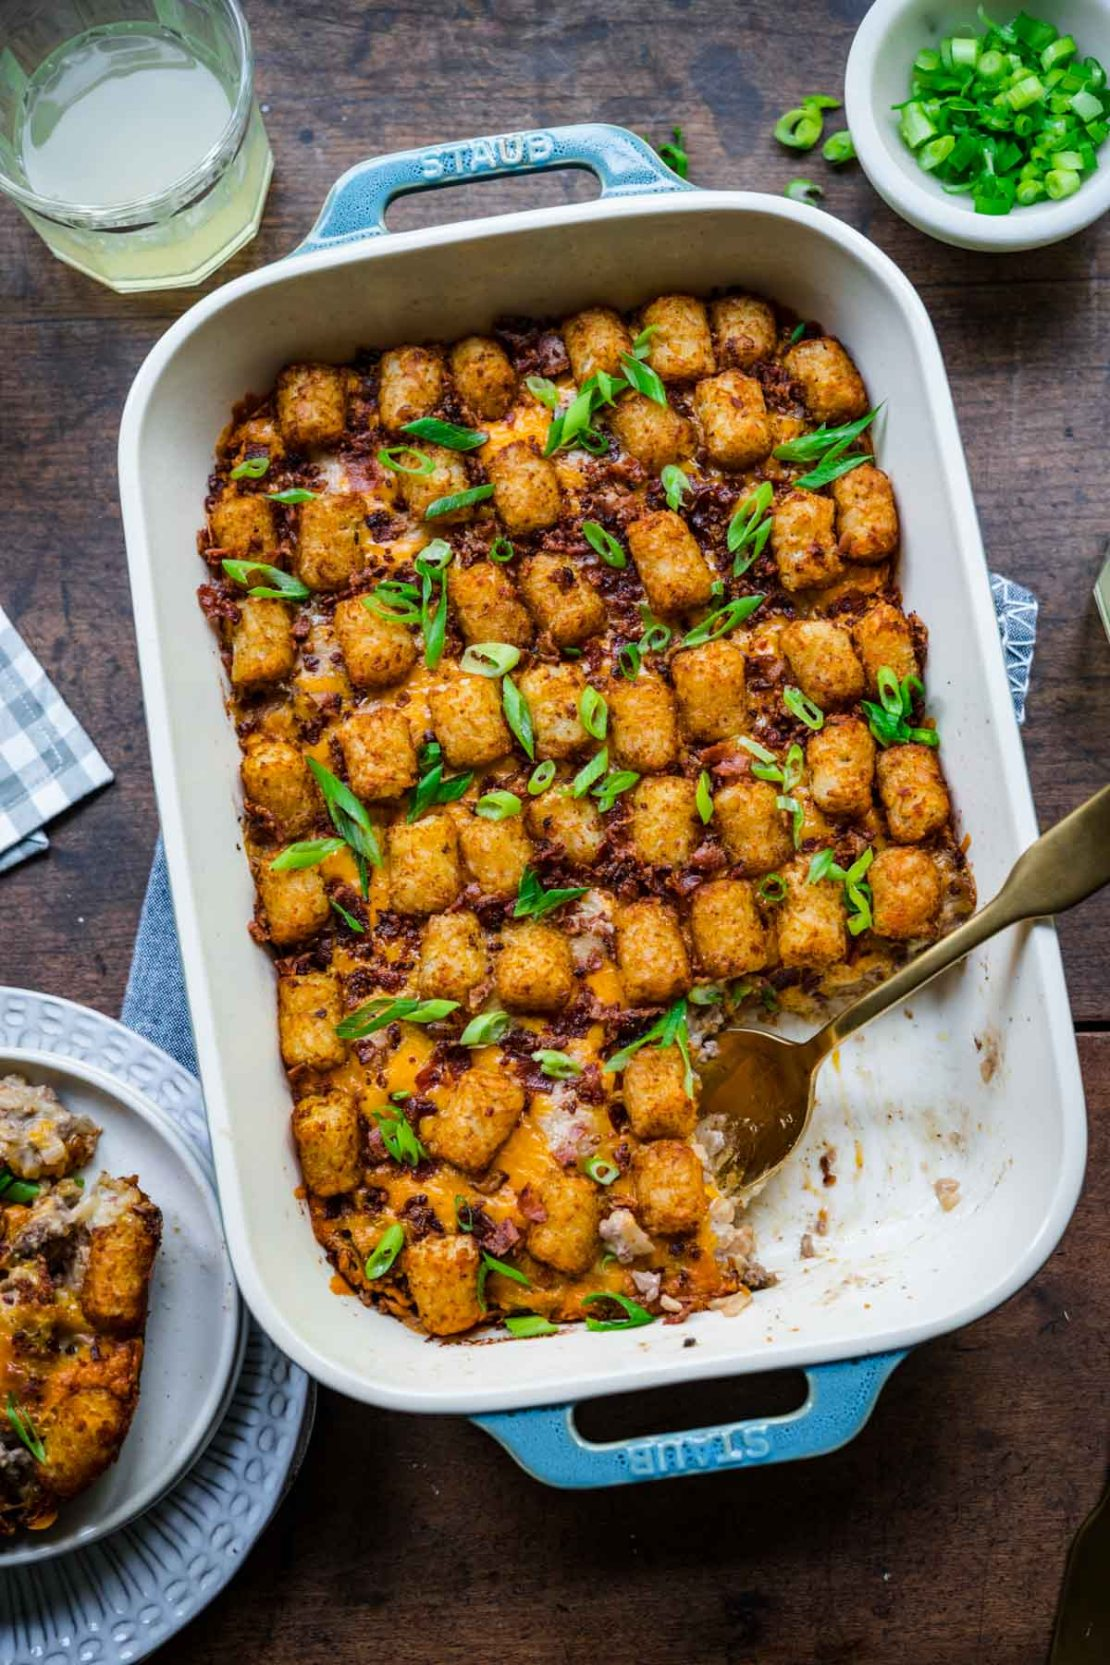 Finished Bacon Cheeseburger Tater Tot Casserole in 9x13 pan with bacon and green onions garnish